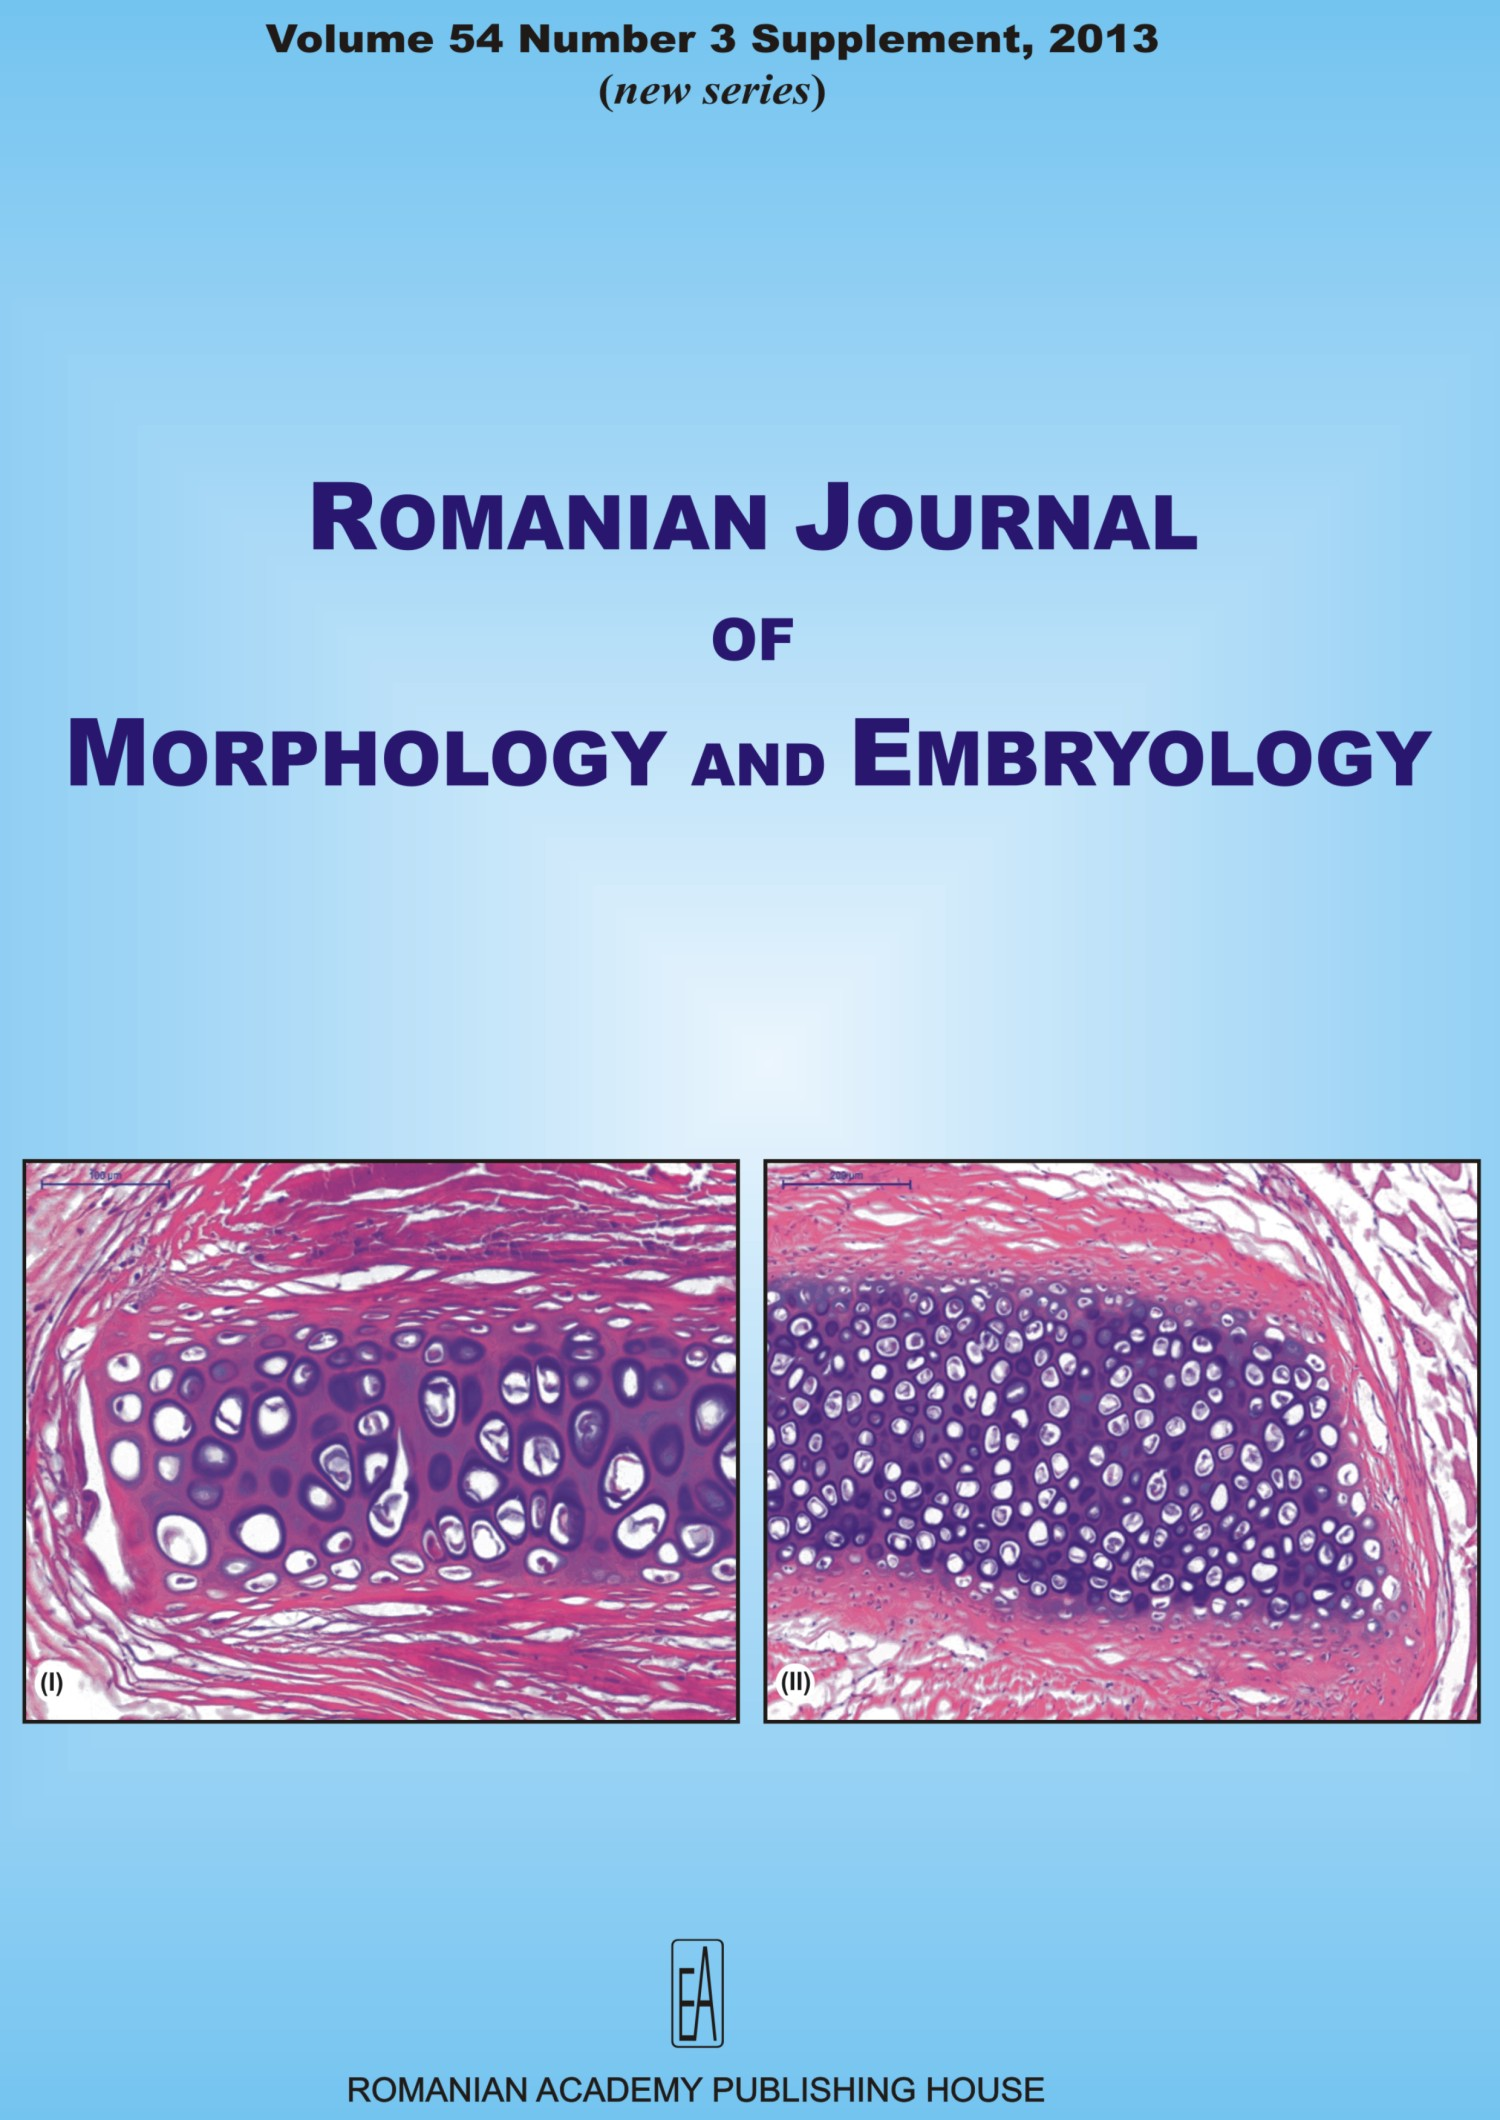 Romanian Journal of Morphology and Embryology, vol. 54 no. 3Suppl, 2013